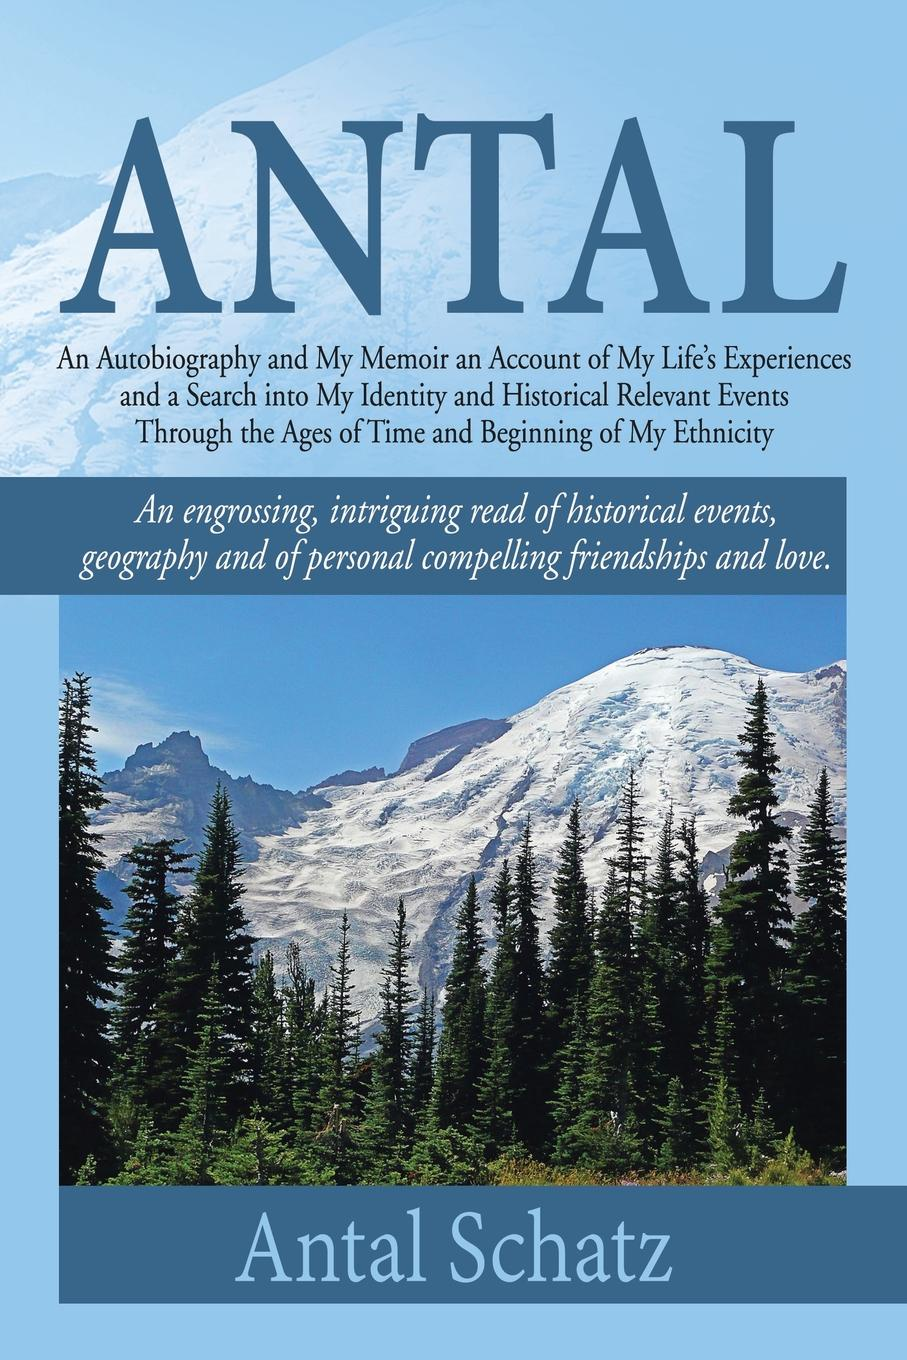 Antal Schatz Antal. An Autobiography and My Memoir an Account of My Life's Experiences and a Search into My Identity and Historical Relevant Events Through the Ages of Time and Beginning of My Ethnicity цена